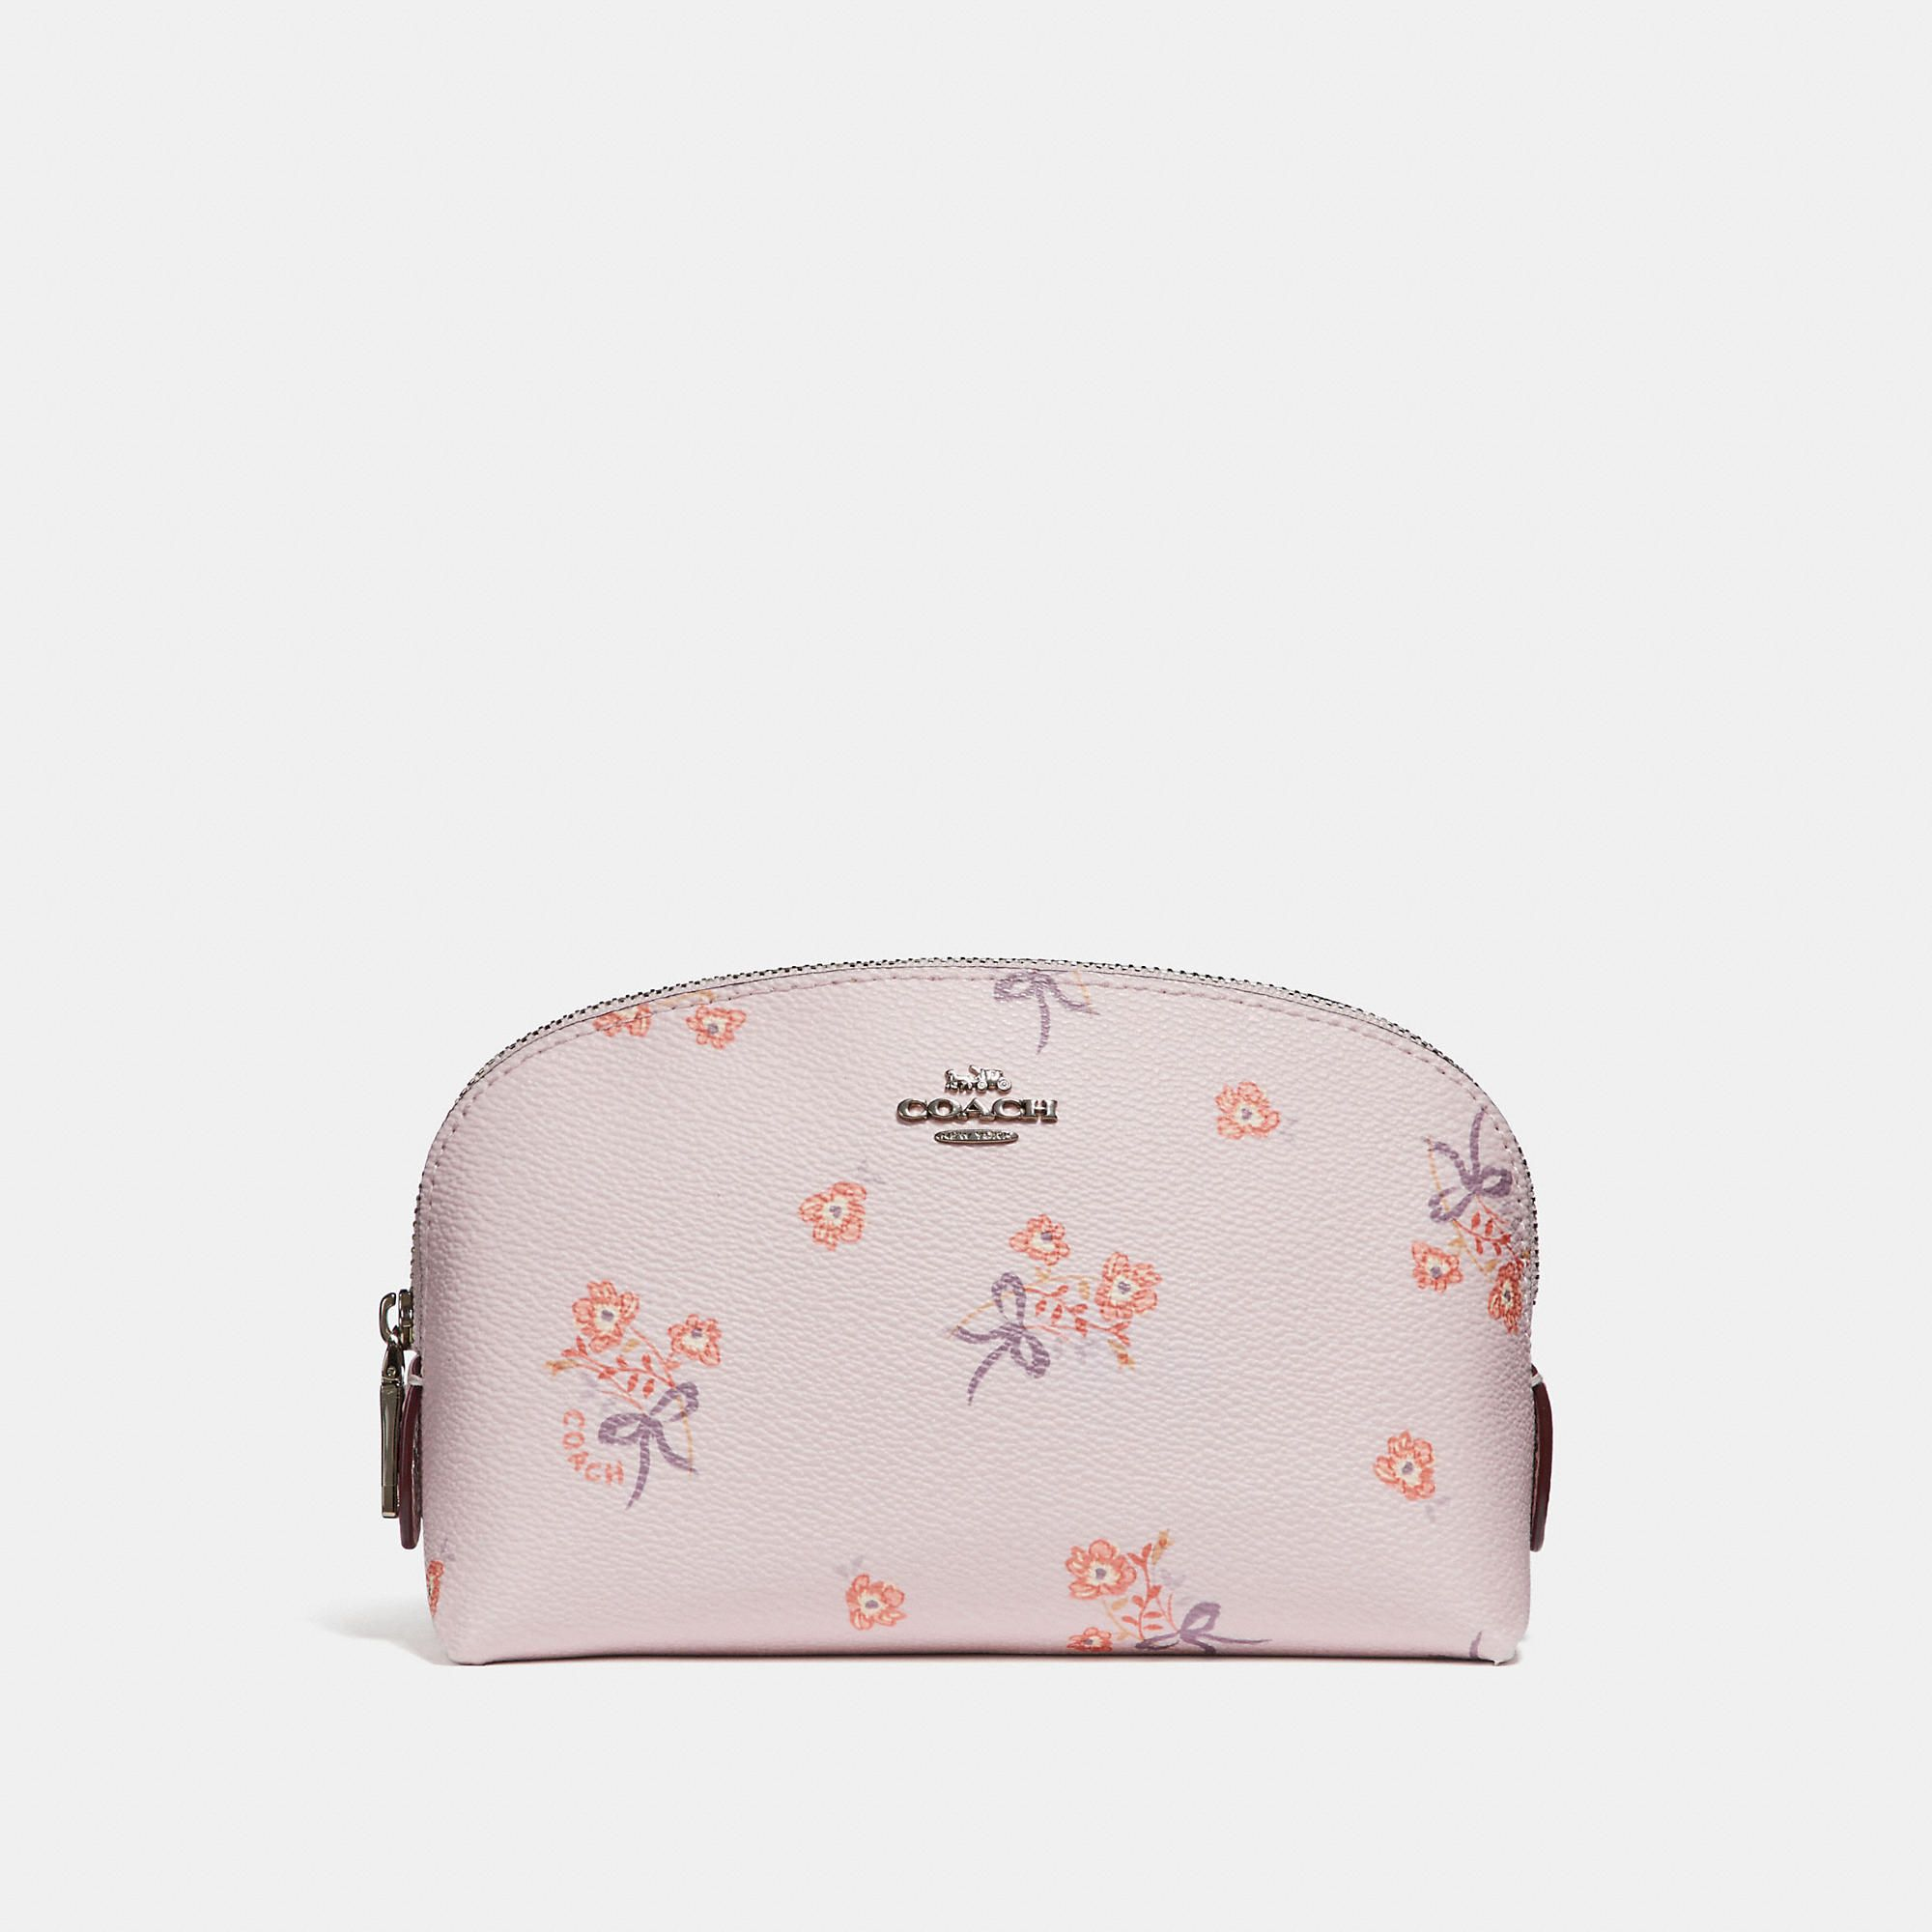 38f768dd6c134c Cosmetic case 17 with floral bow print in 2019 | Products | Cosmetic ...